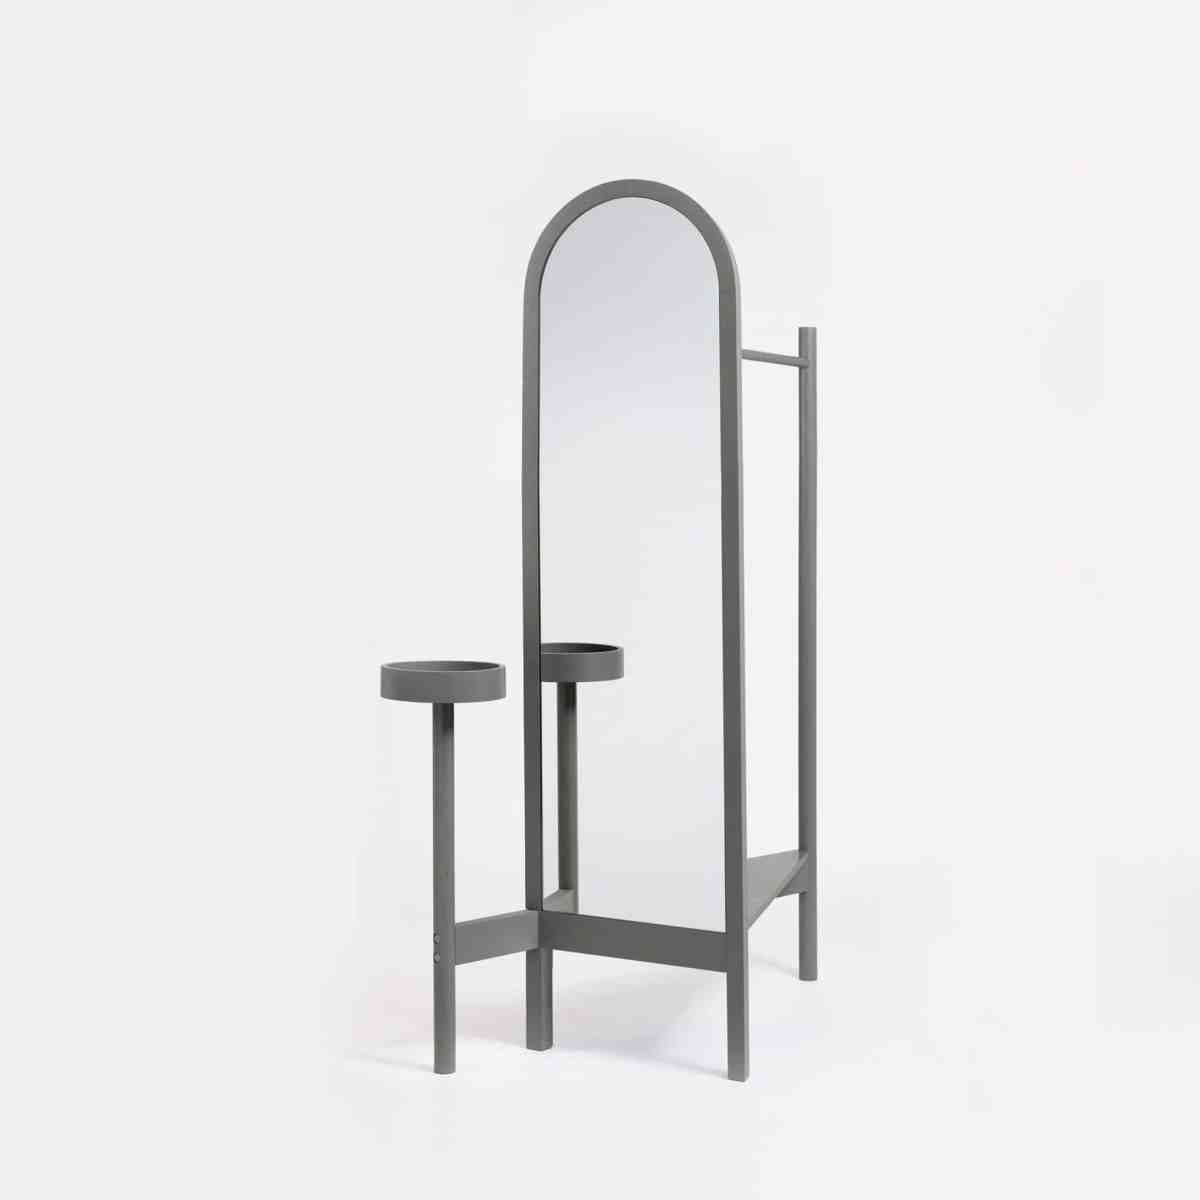 aeries-two-valet-stand-grey-another-country-001